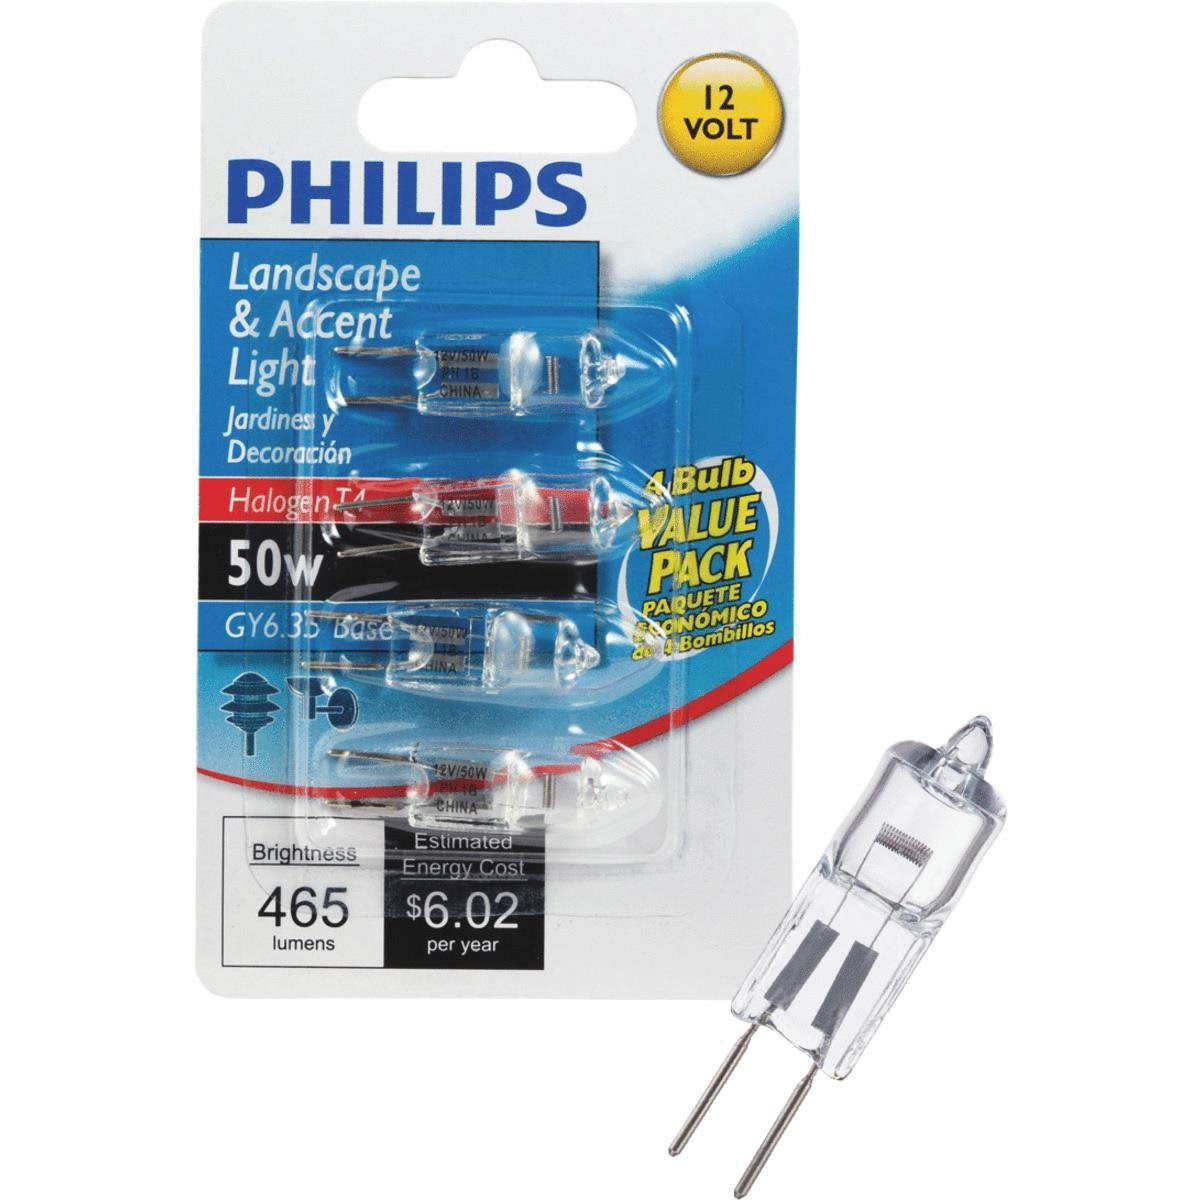 Philips Landscape & Accent Light Bulb - 50W, 12V, T4